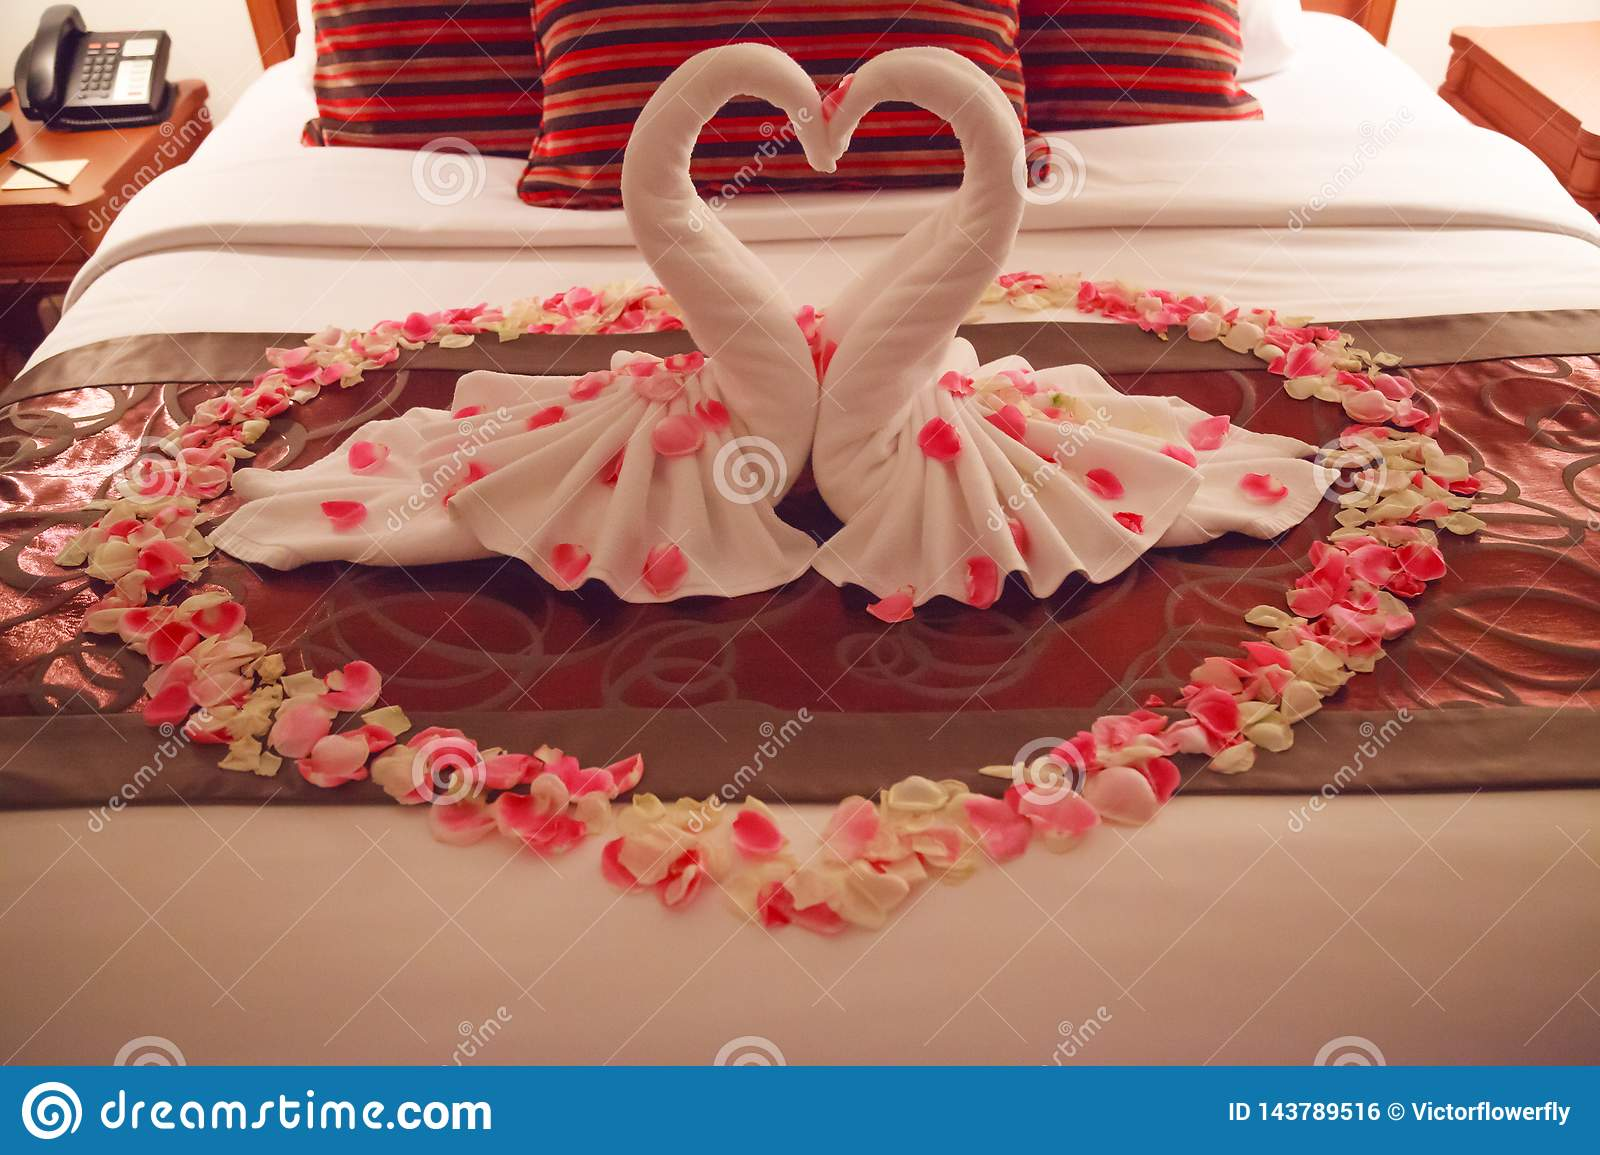 Romantic Bedroom Interior Kissing Swan Origami Towels And Sprinkled Fresh Pink White Rose Flower Petals Decoration On Bed For Stock Photo Image Of Craft Floral 143789516